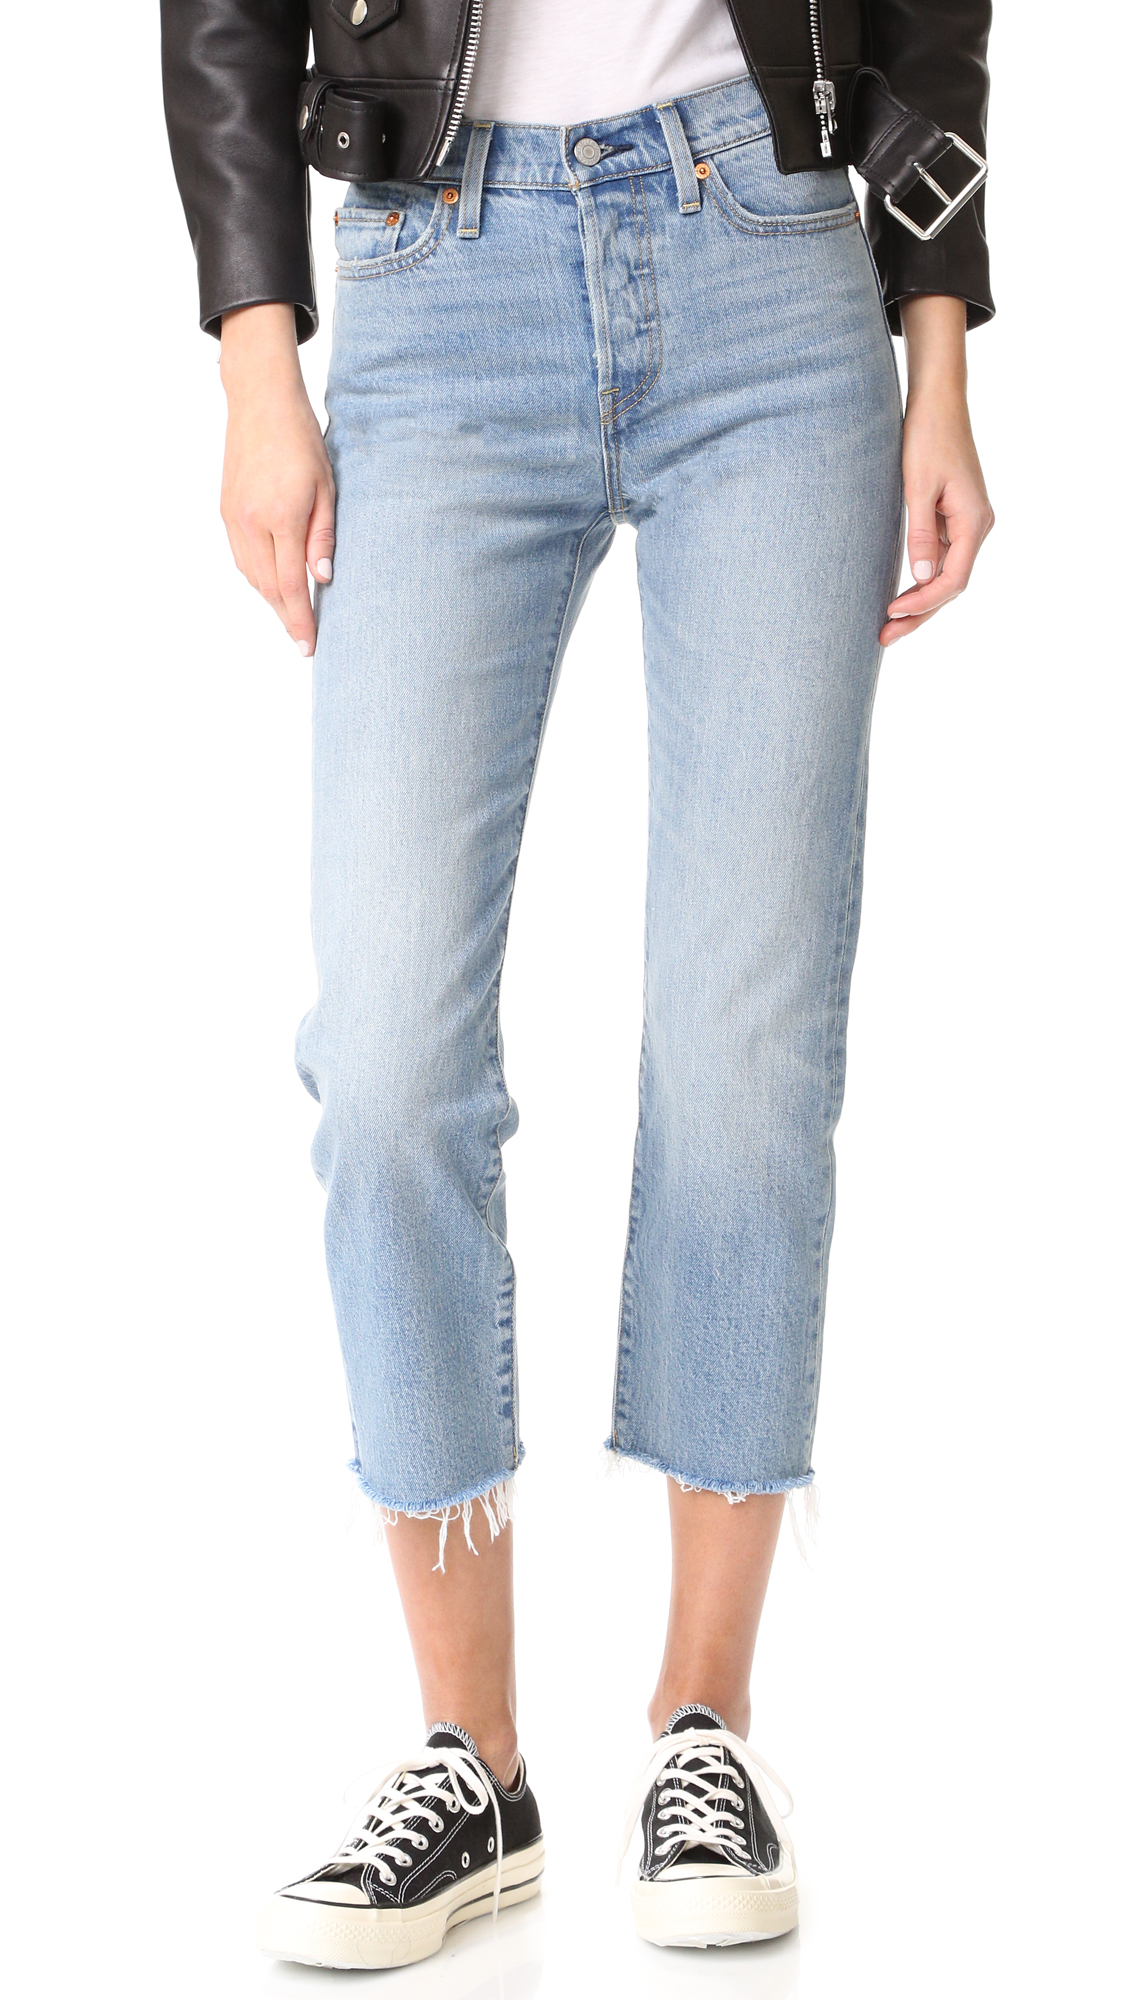 Levis Wedgie Straight Jeans - Rough Tide